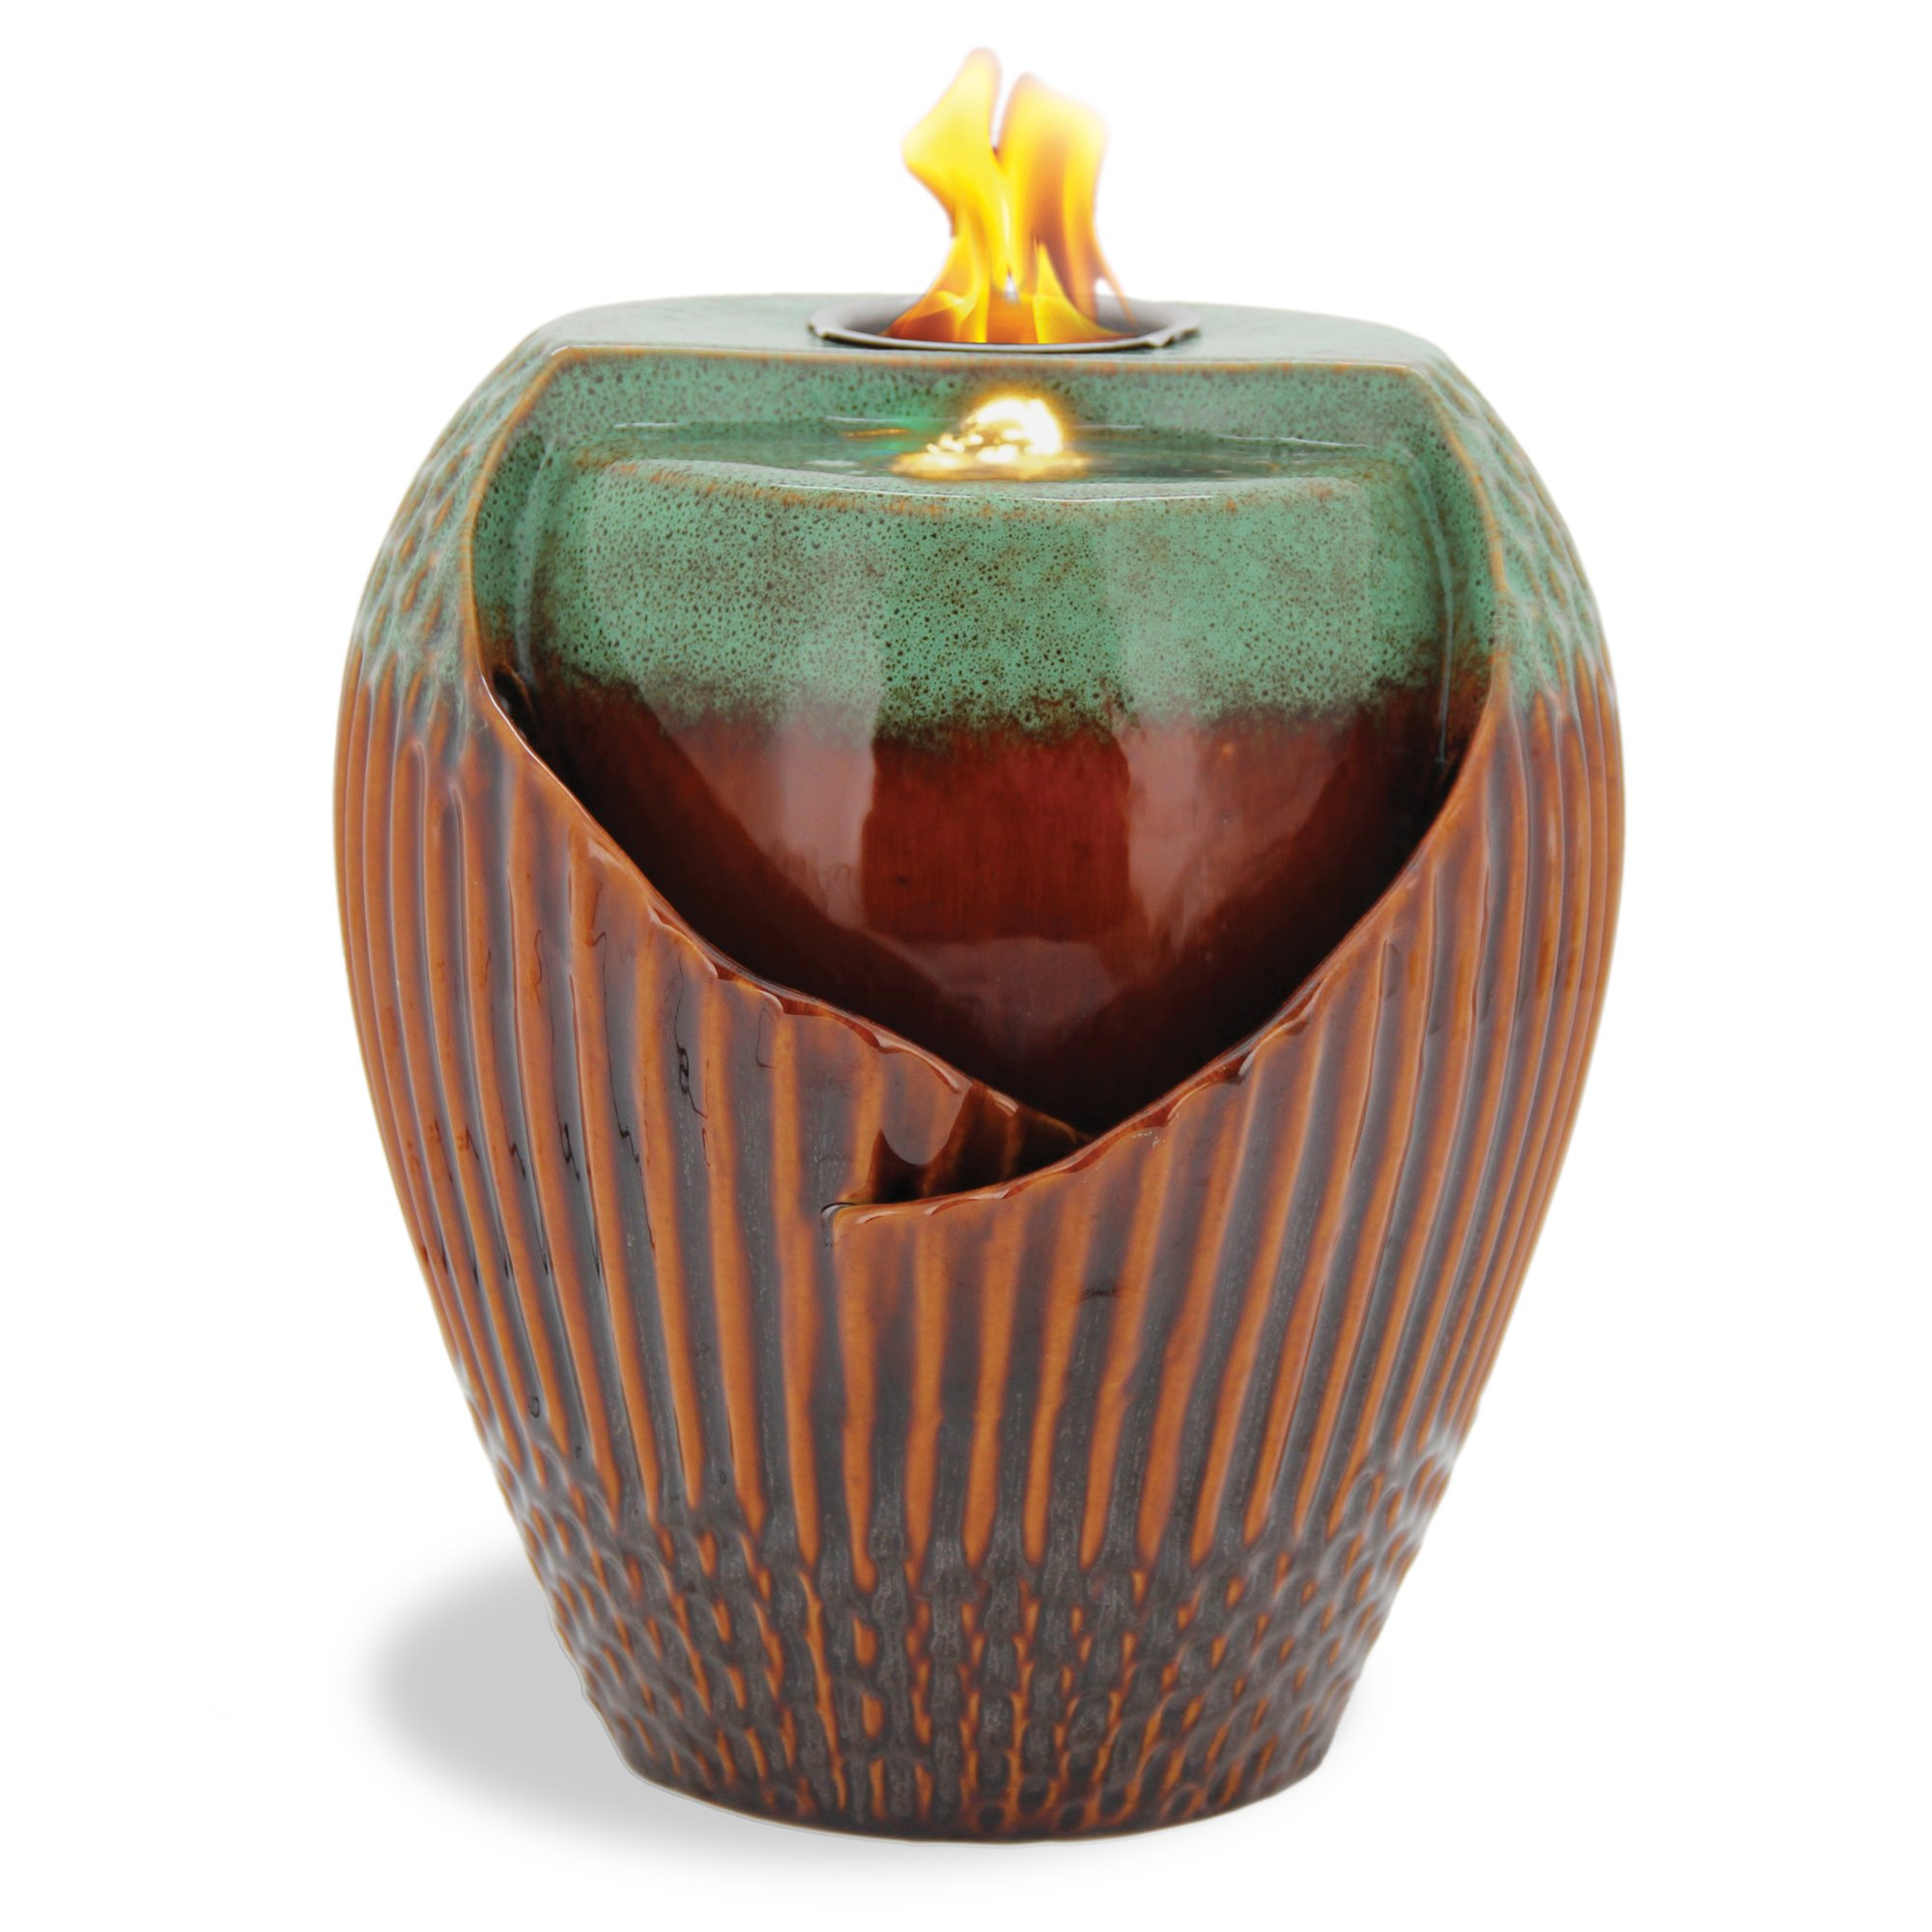 Pacific Décor Osaka LED Flame Fountain, 12-Inch, Green/Brown